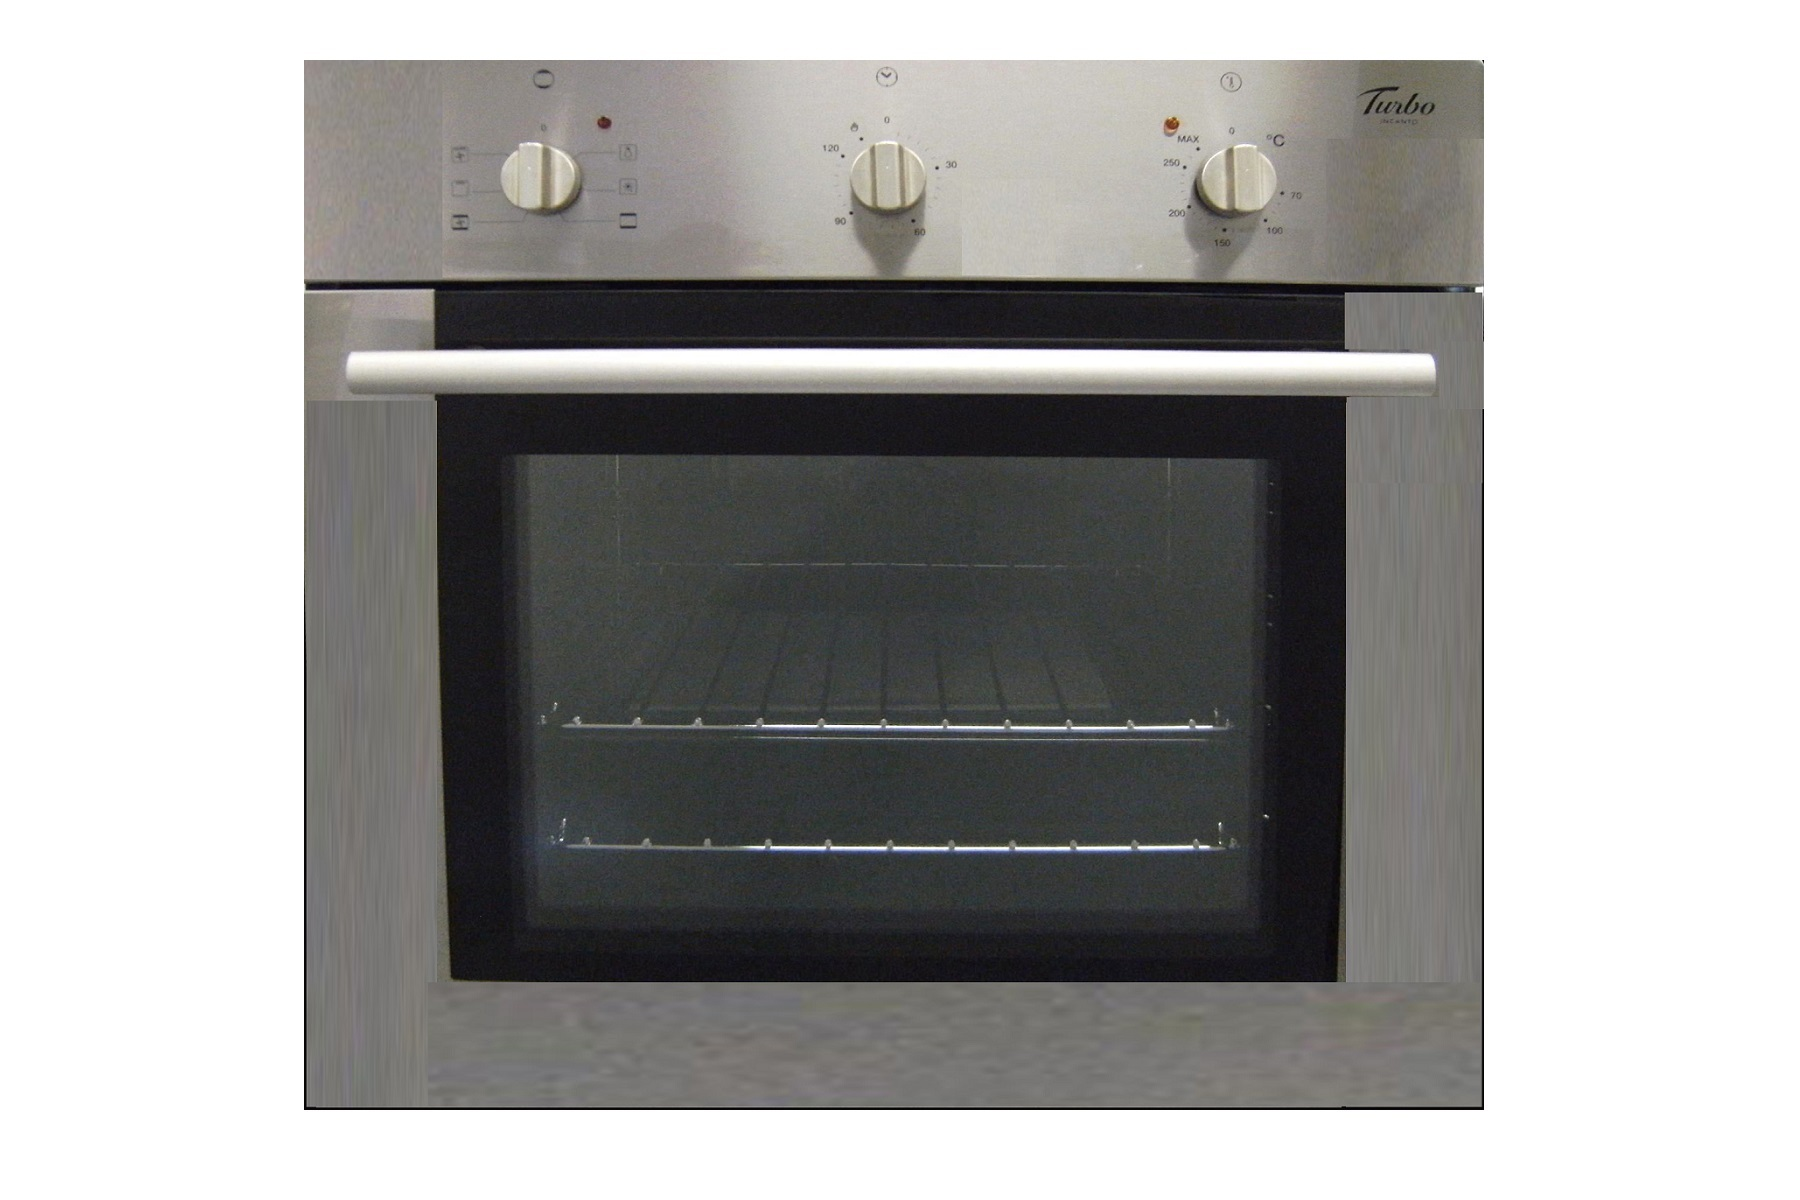 Turbo Incanto Tfx6605ss 5 Functions Multifunction Oven